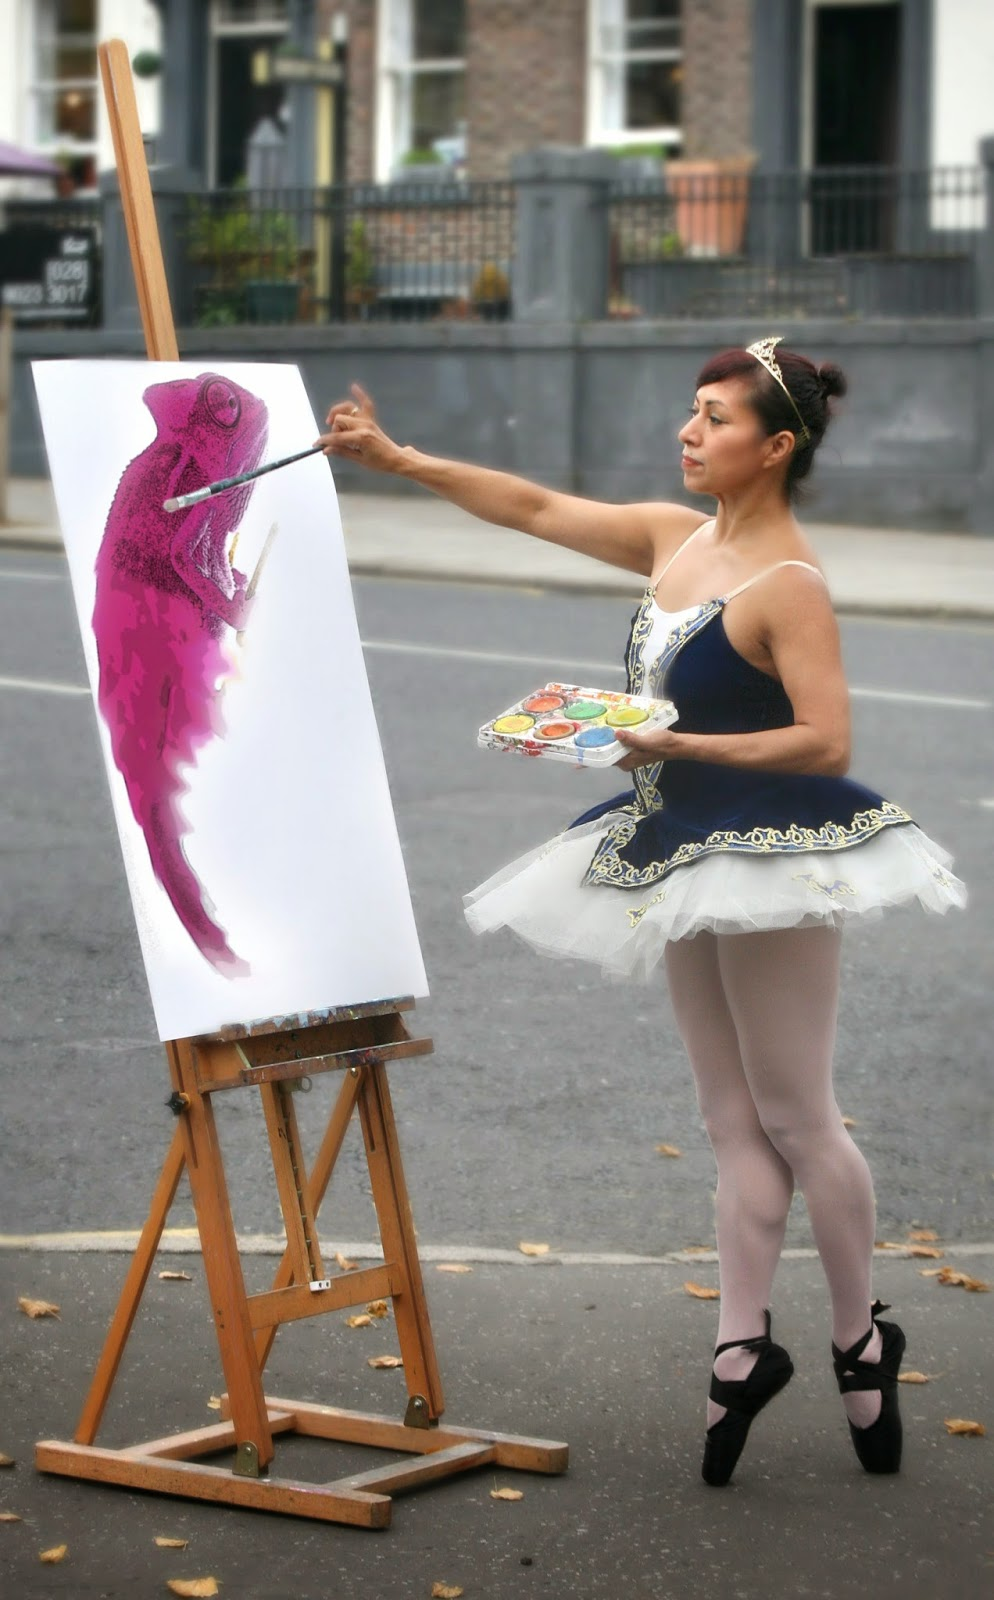 Mayte Segura, a dance tutor at the Crescent Arts Centre embraces the Try  Something New campaign and tries her hand at painting. The Crescent Arts   Centre September – December terms starts soon and with over 250 classes from   as little as £10 there is no reason not to try something new. More information is   available at www.crescentarts.org